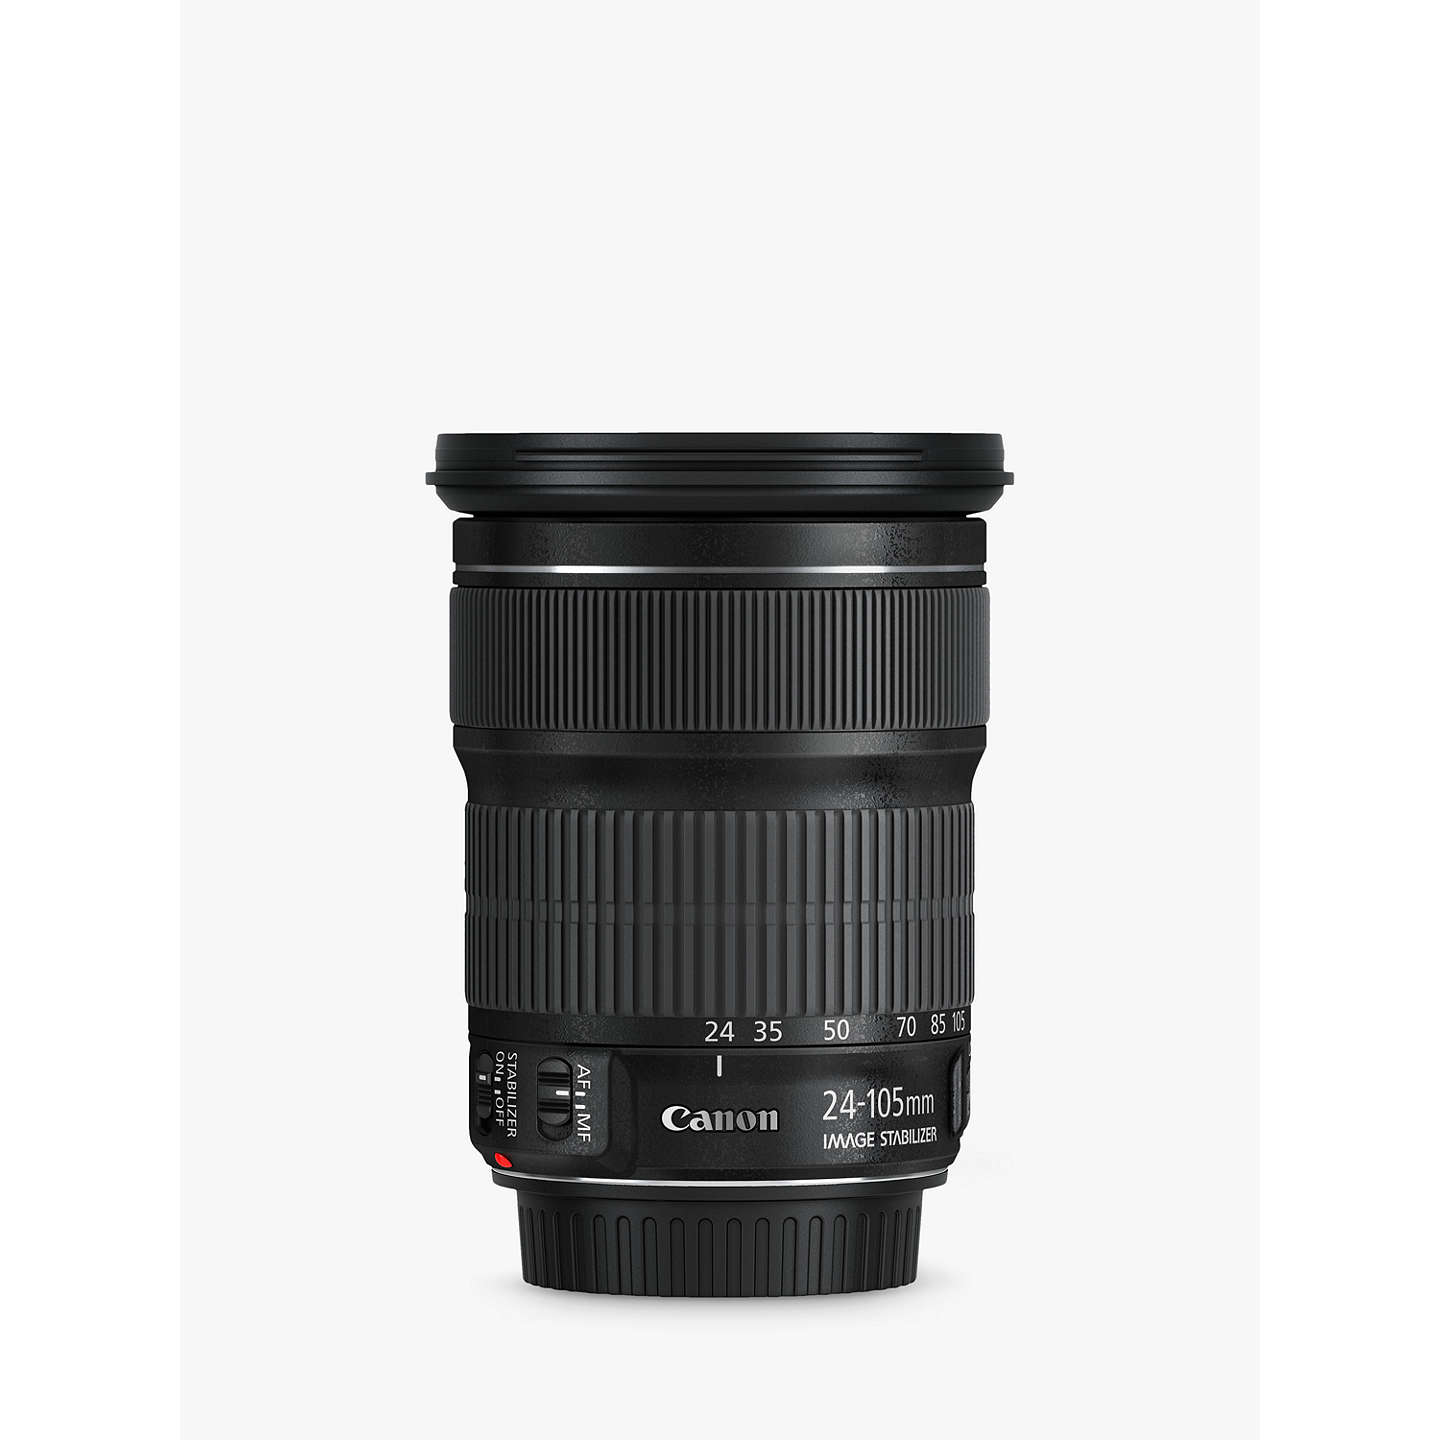 BuyCanon EF 24-105mm f/3.5-5.6 IS STM Lens Online at johnlewis.com